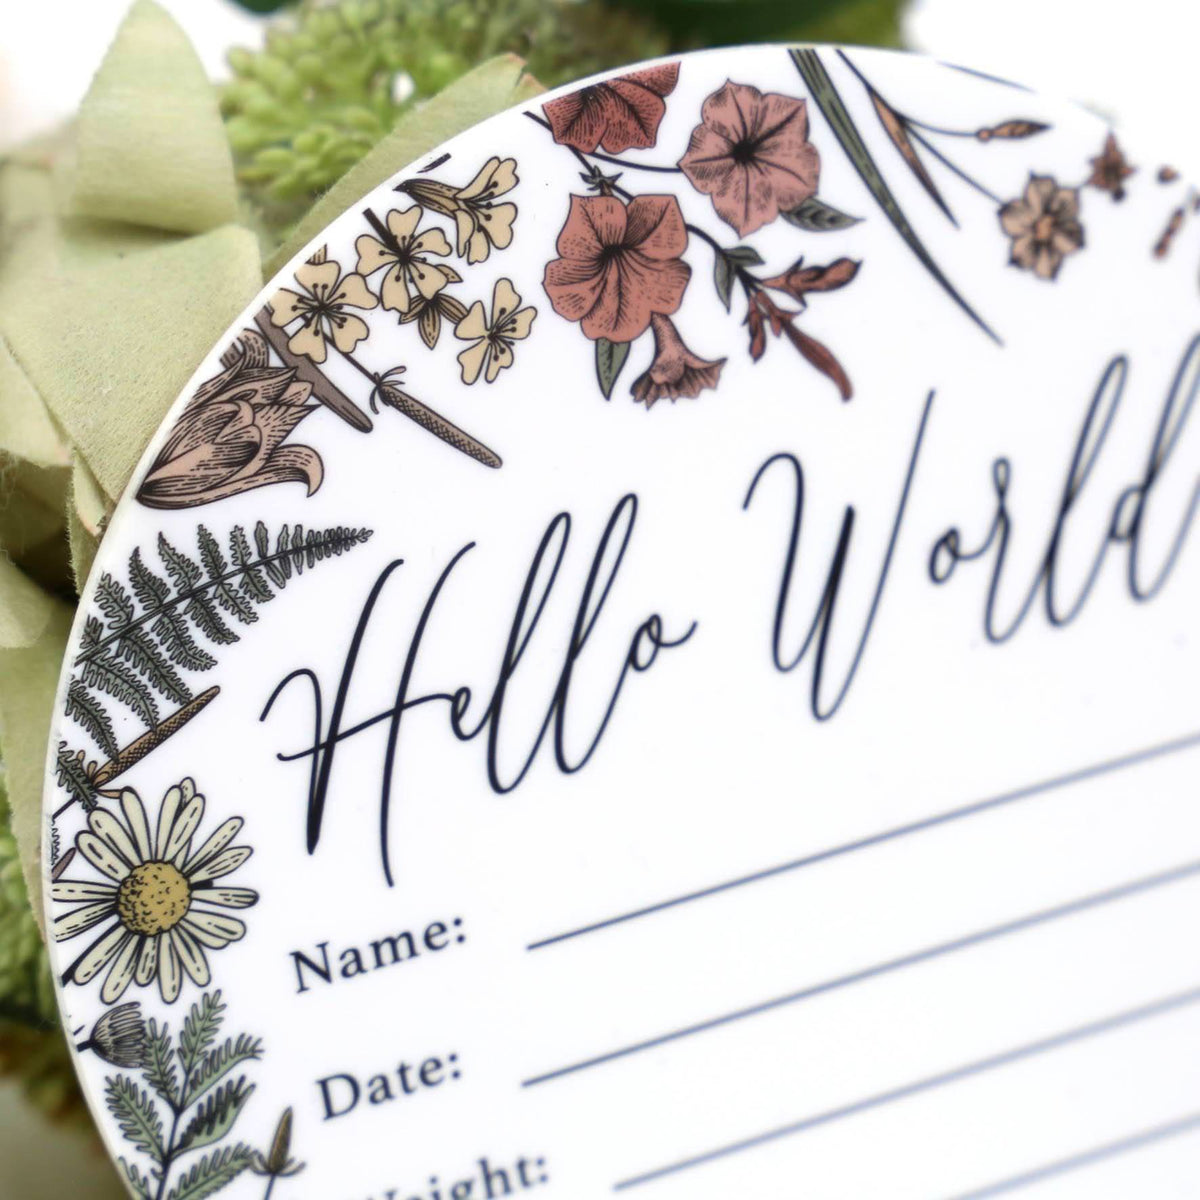 Birth Announcement Card- Hello World White Acrylic Printed Wildflower